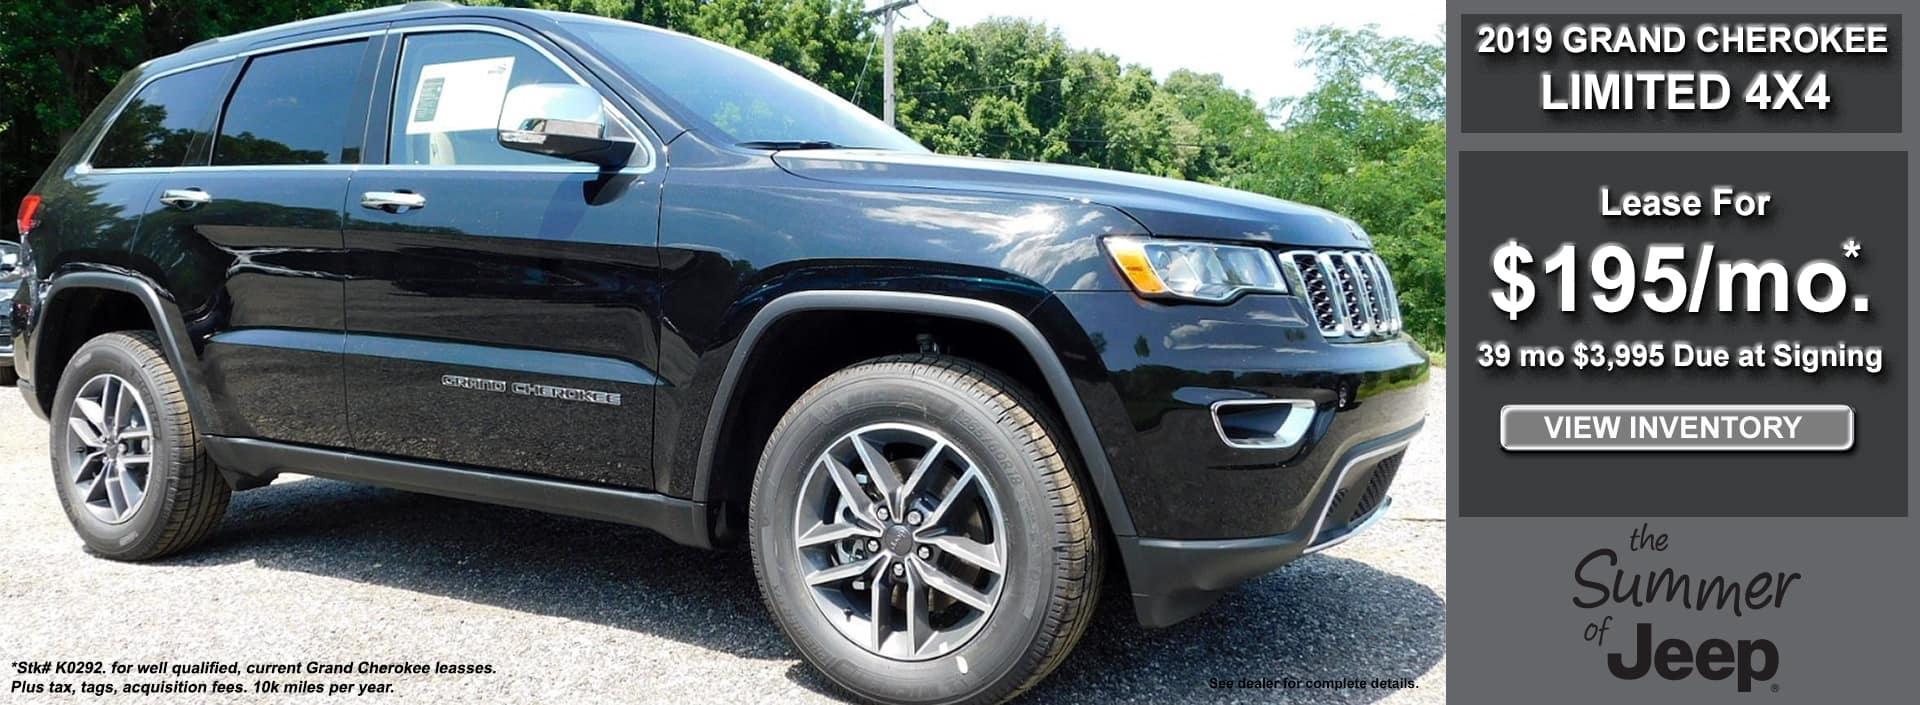 Grand Cherokee Limited Lease July 2019